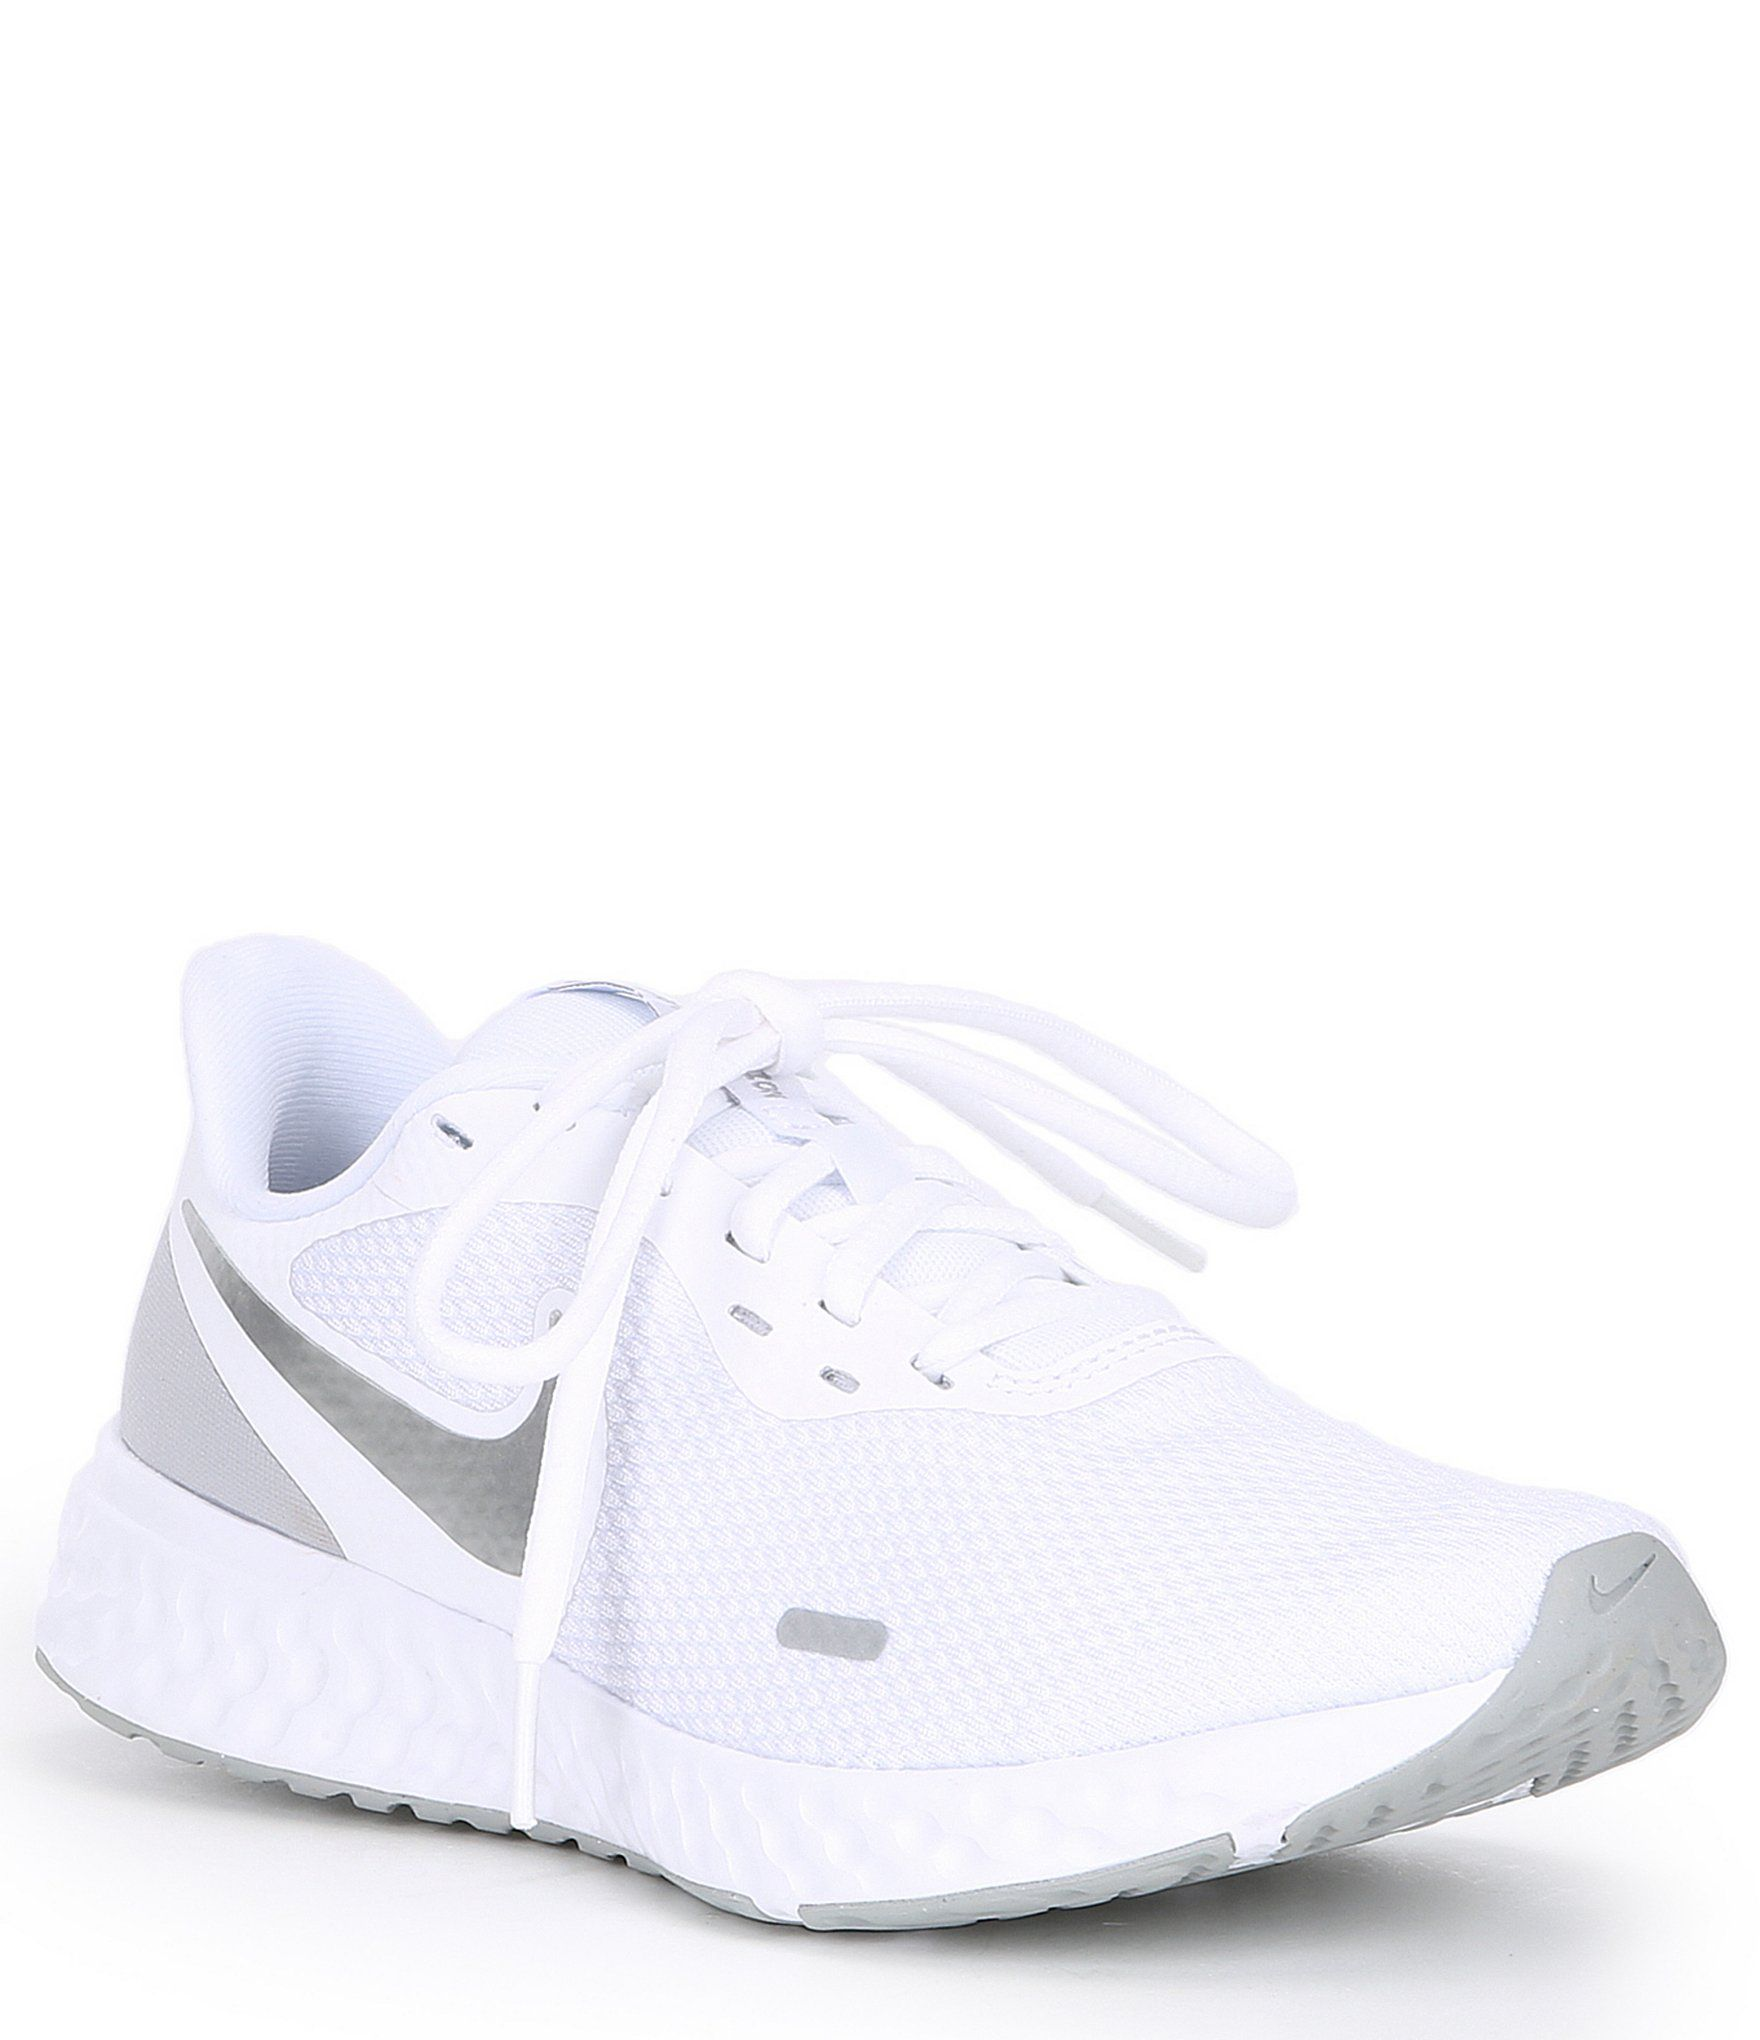 Nike Women 039 S Revolution 5 Running Shoe White Pure Platinum Wolf Grey 7 5m White Nike Shoes Nike Shoes Women Womens Tennis Shoes